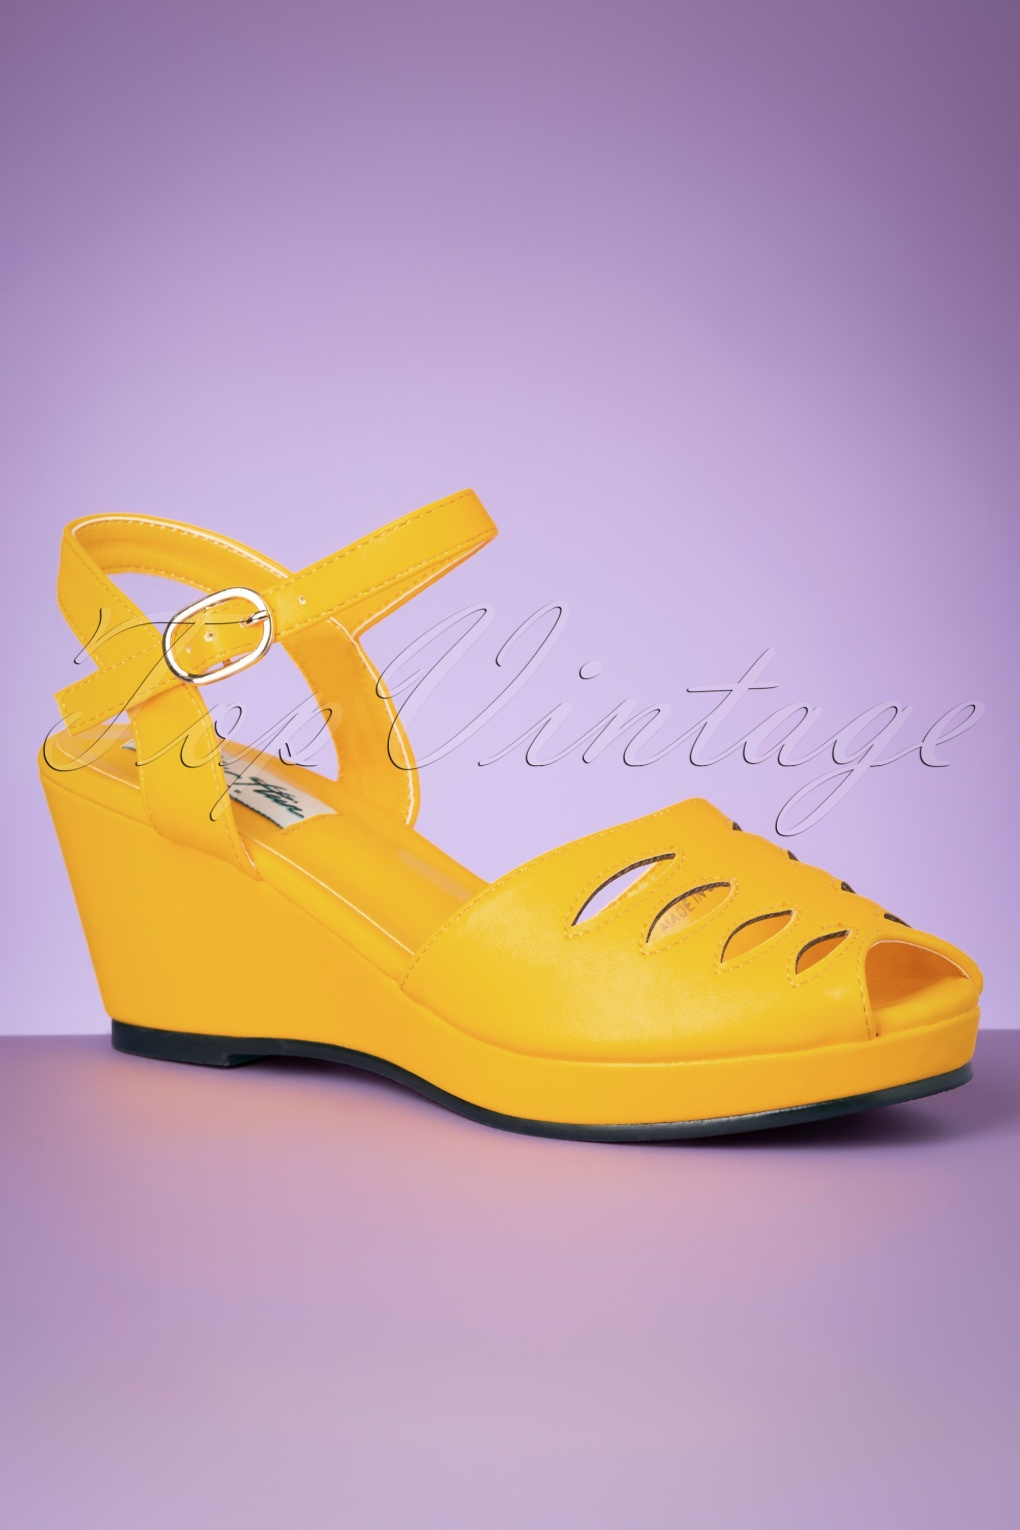 1950s Style Shoes | Heels, Flats, Saddle Shoes 60s Lily Wedge Sandals in Yellow £40.51 AT vintagedancer.com